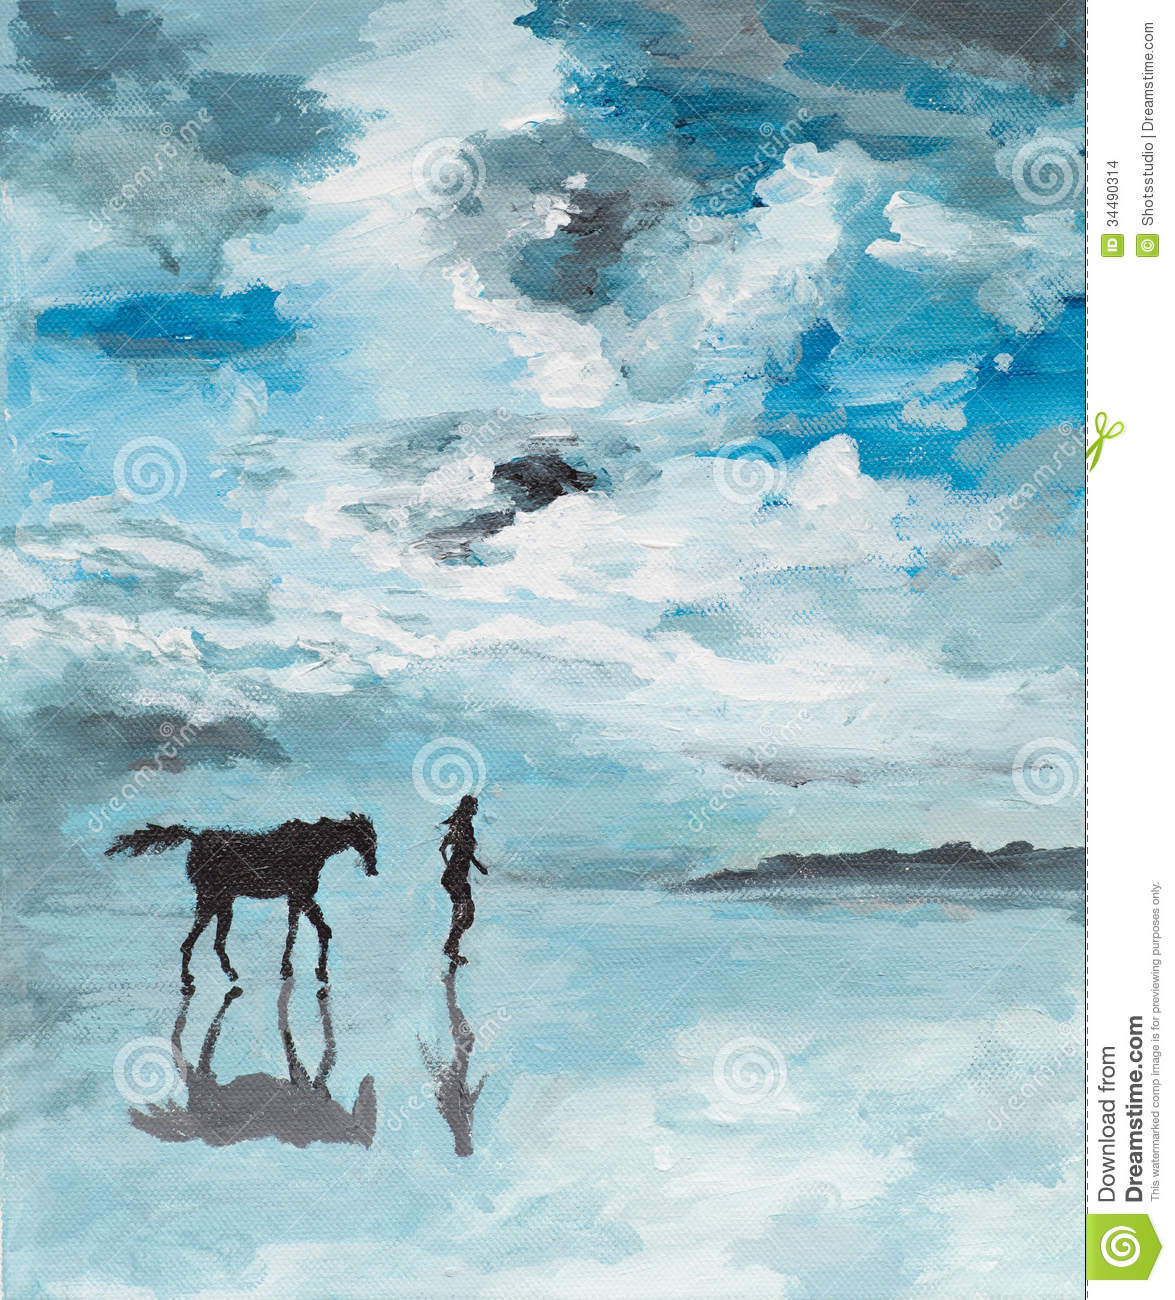 Peaceful Scene, Man And Horse Running On Water Stock